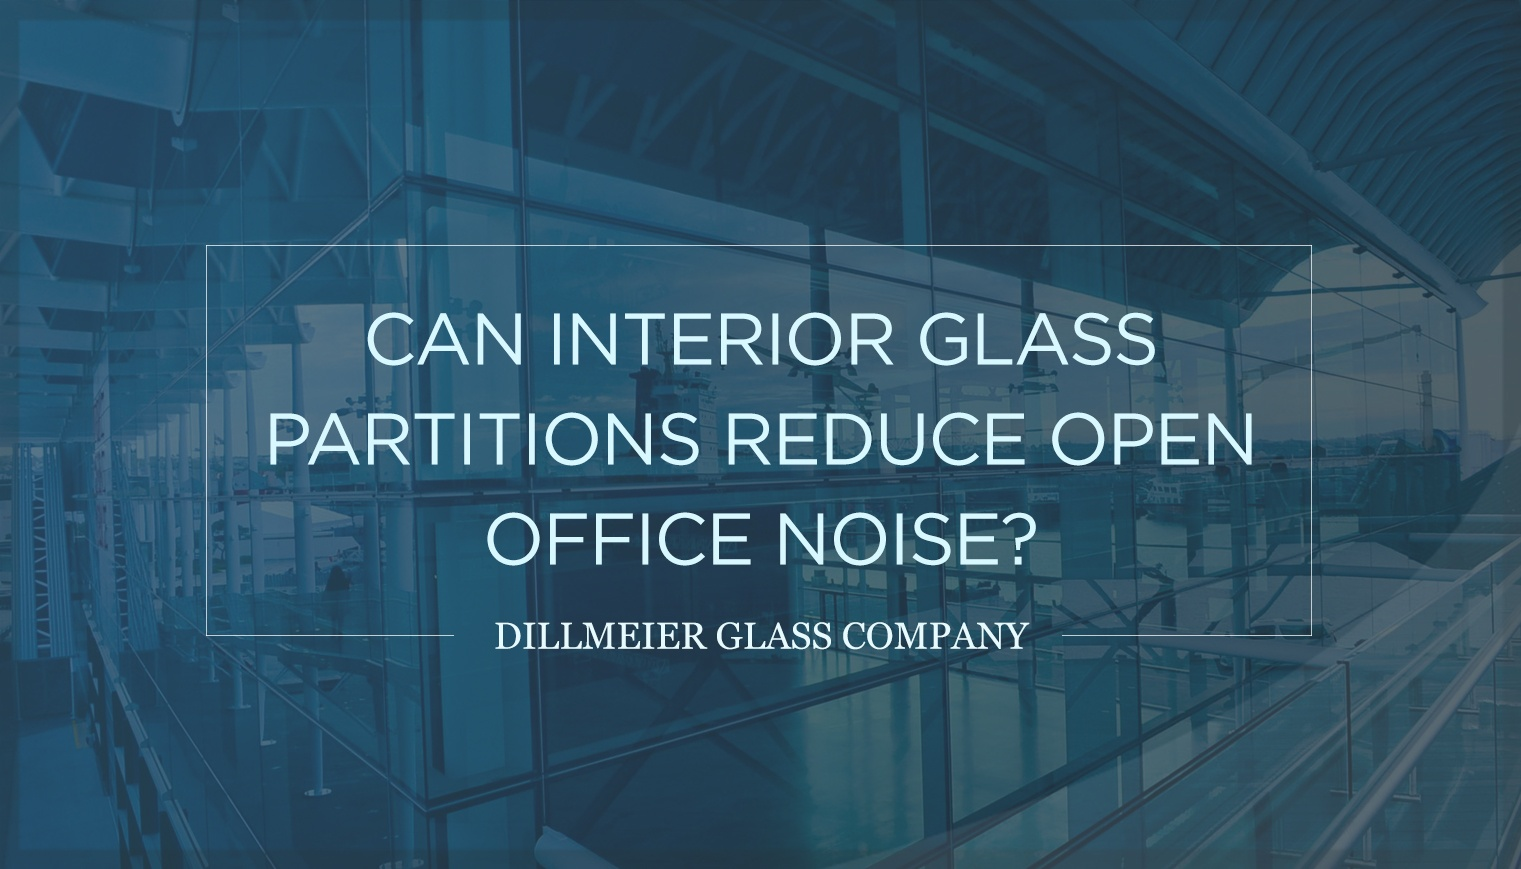 Can Interior Glass Partitions Reduce Open Office Noise?